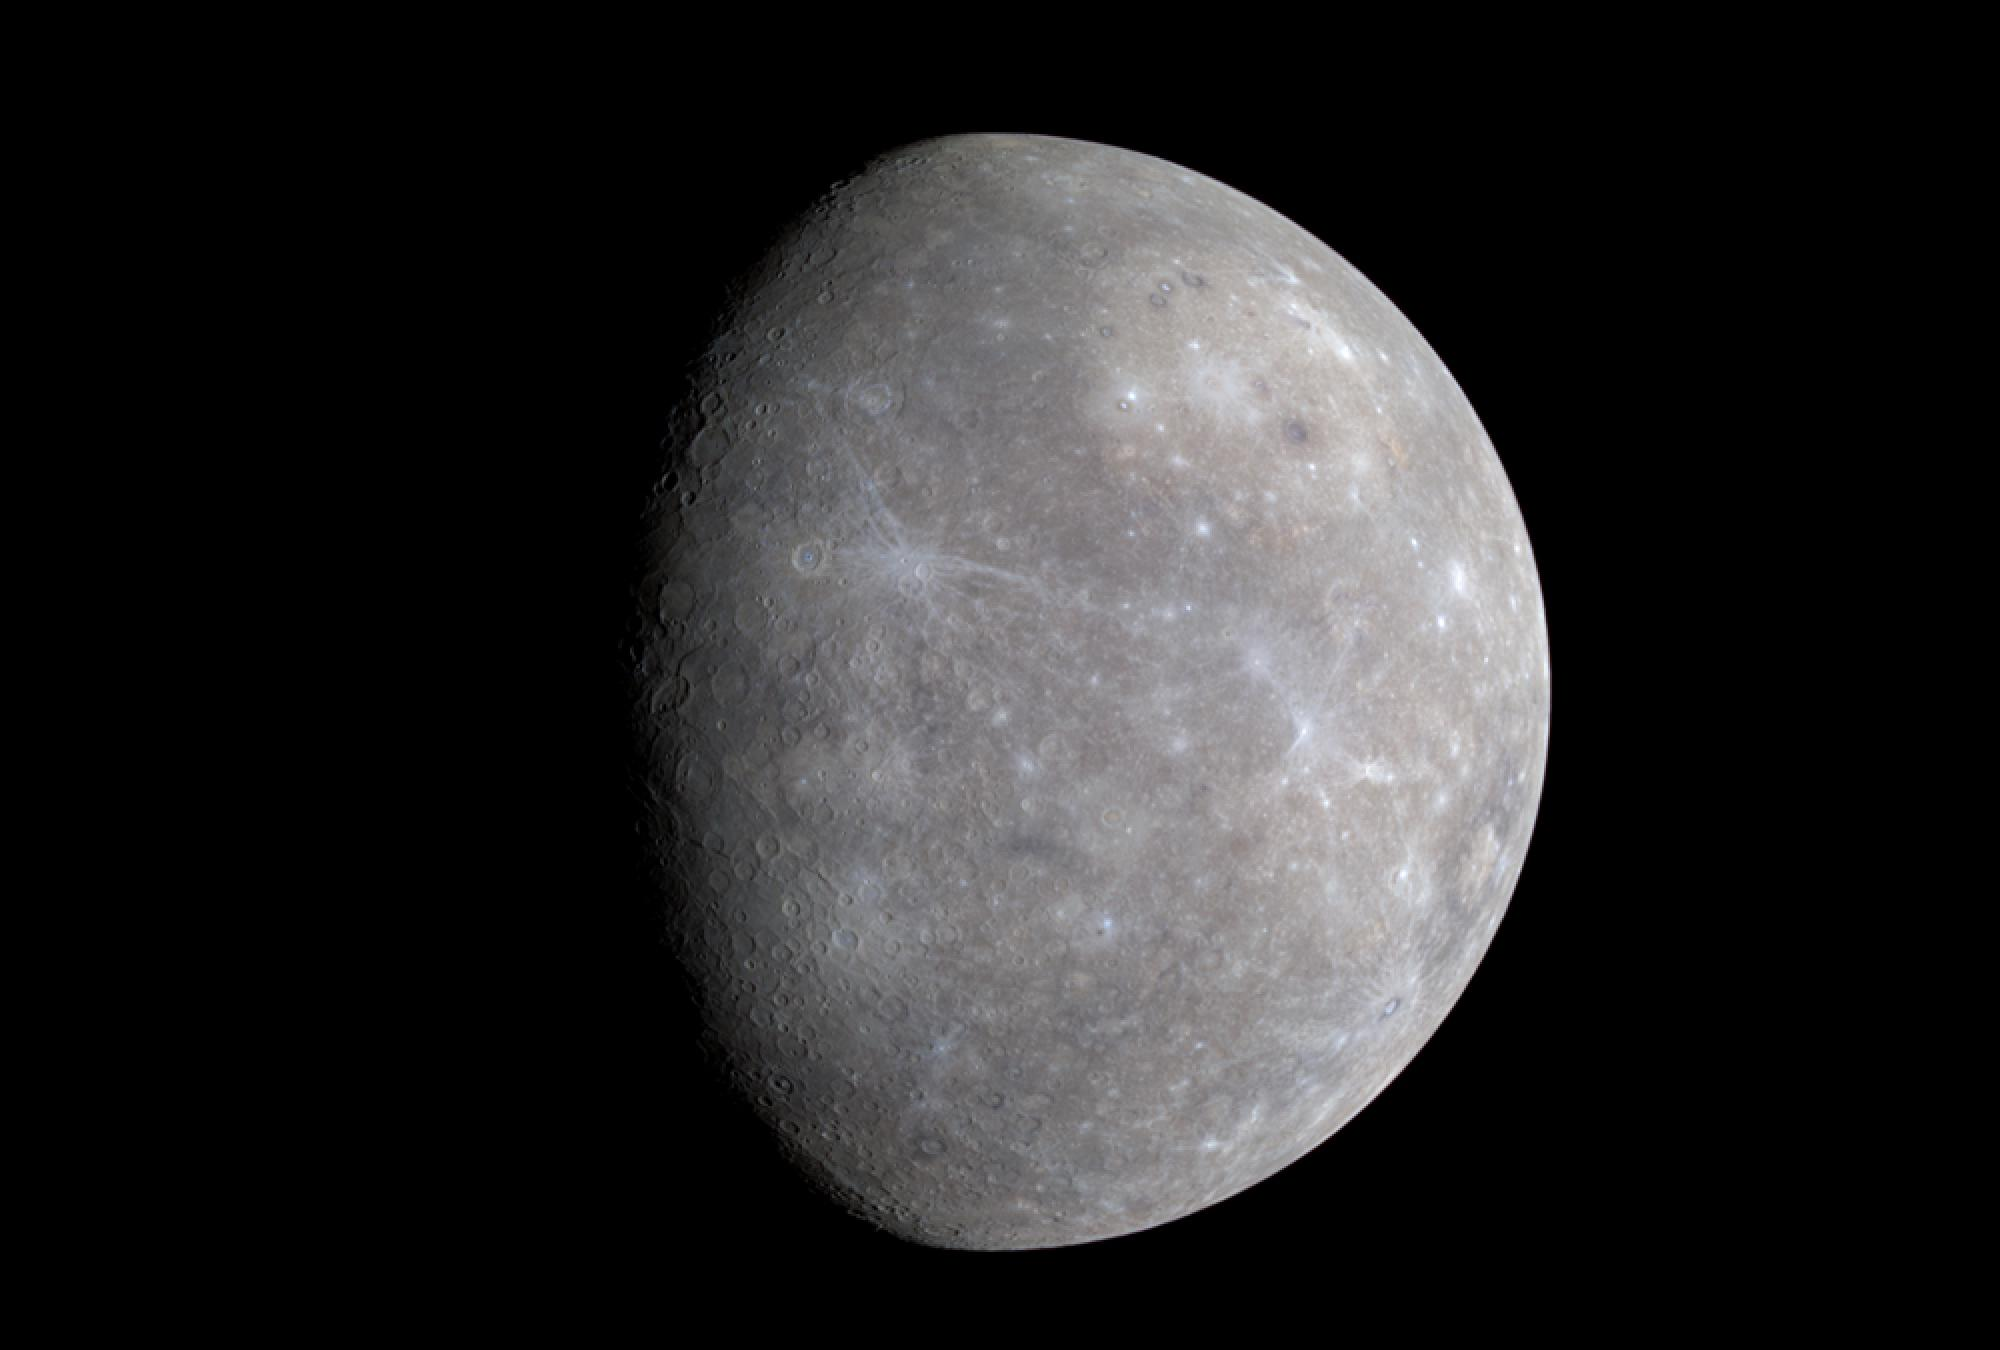 A new view of Mercury obtained during a flyby on Jan. 14, 2008. This mosaic from three different images shows Caloris, the solar system's largest basin - a huge, ancient crater filled in with volcanic material - in the upper right.